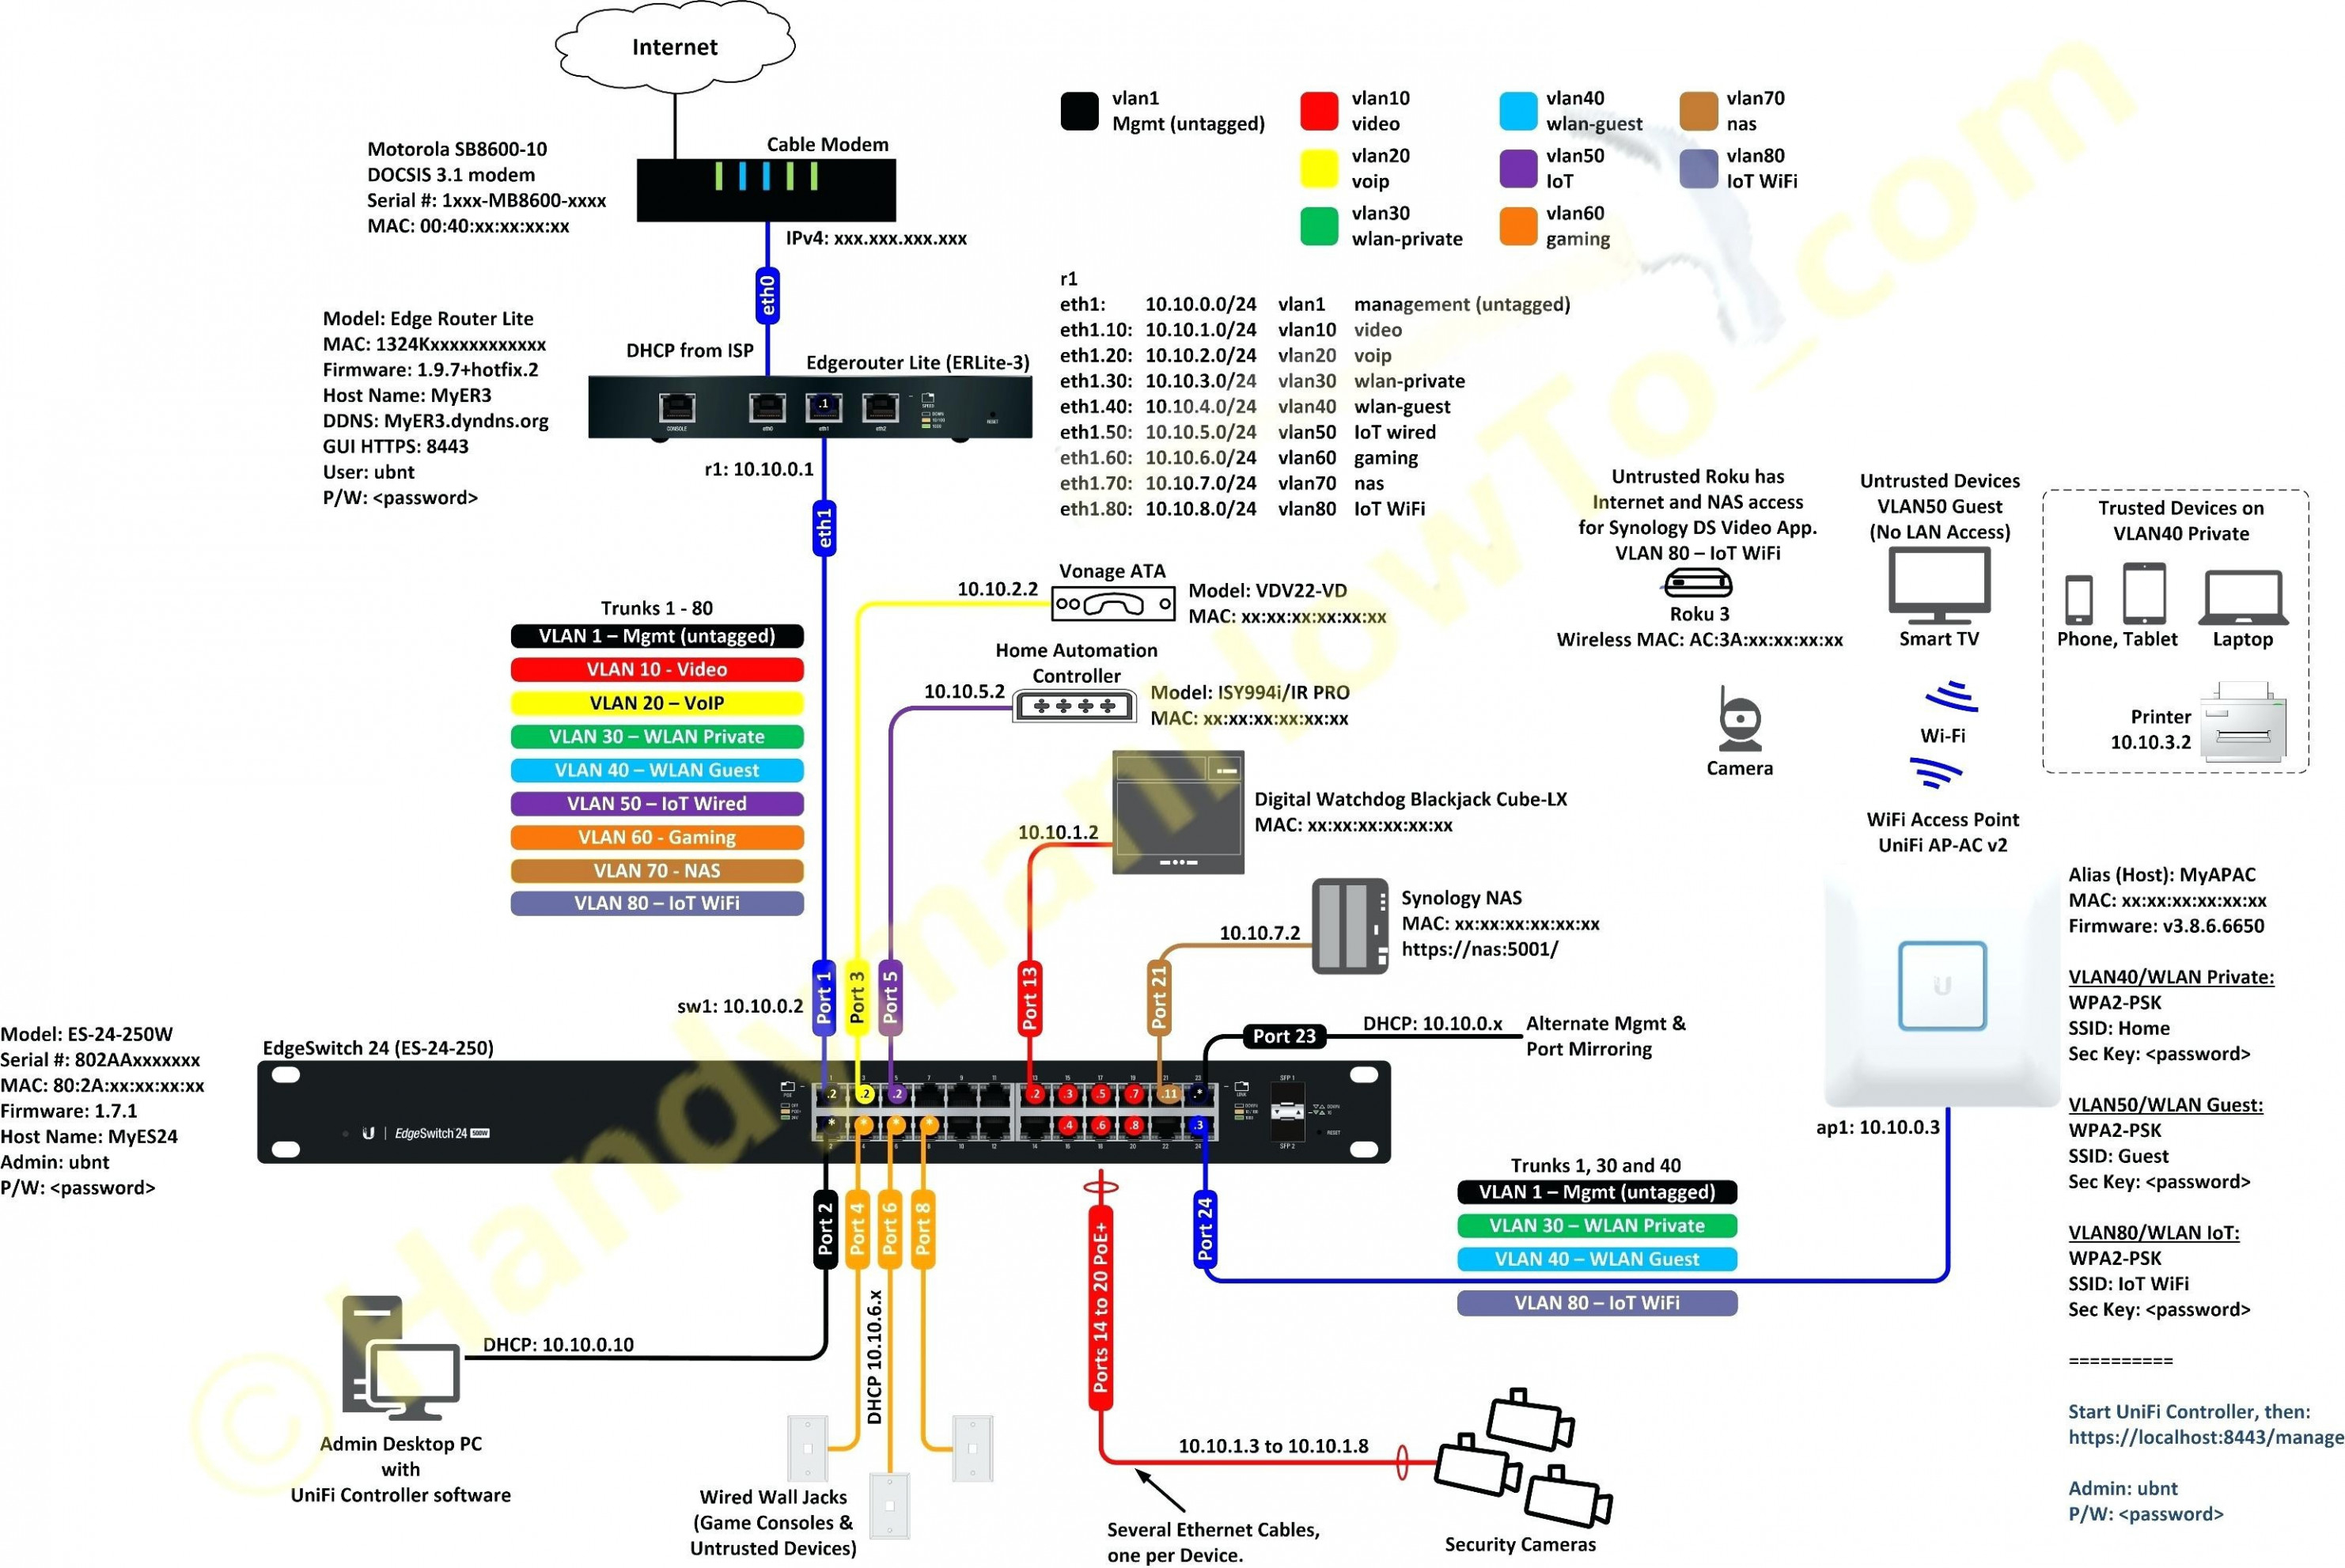 Wiring Diagram For Att Uverse | Wiring Diagram - Att Uverse Cat5 Wiring Diagram